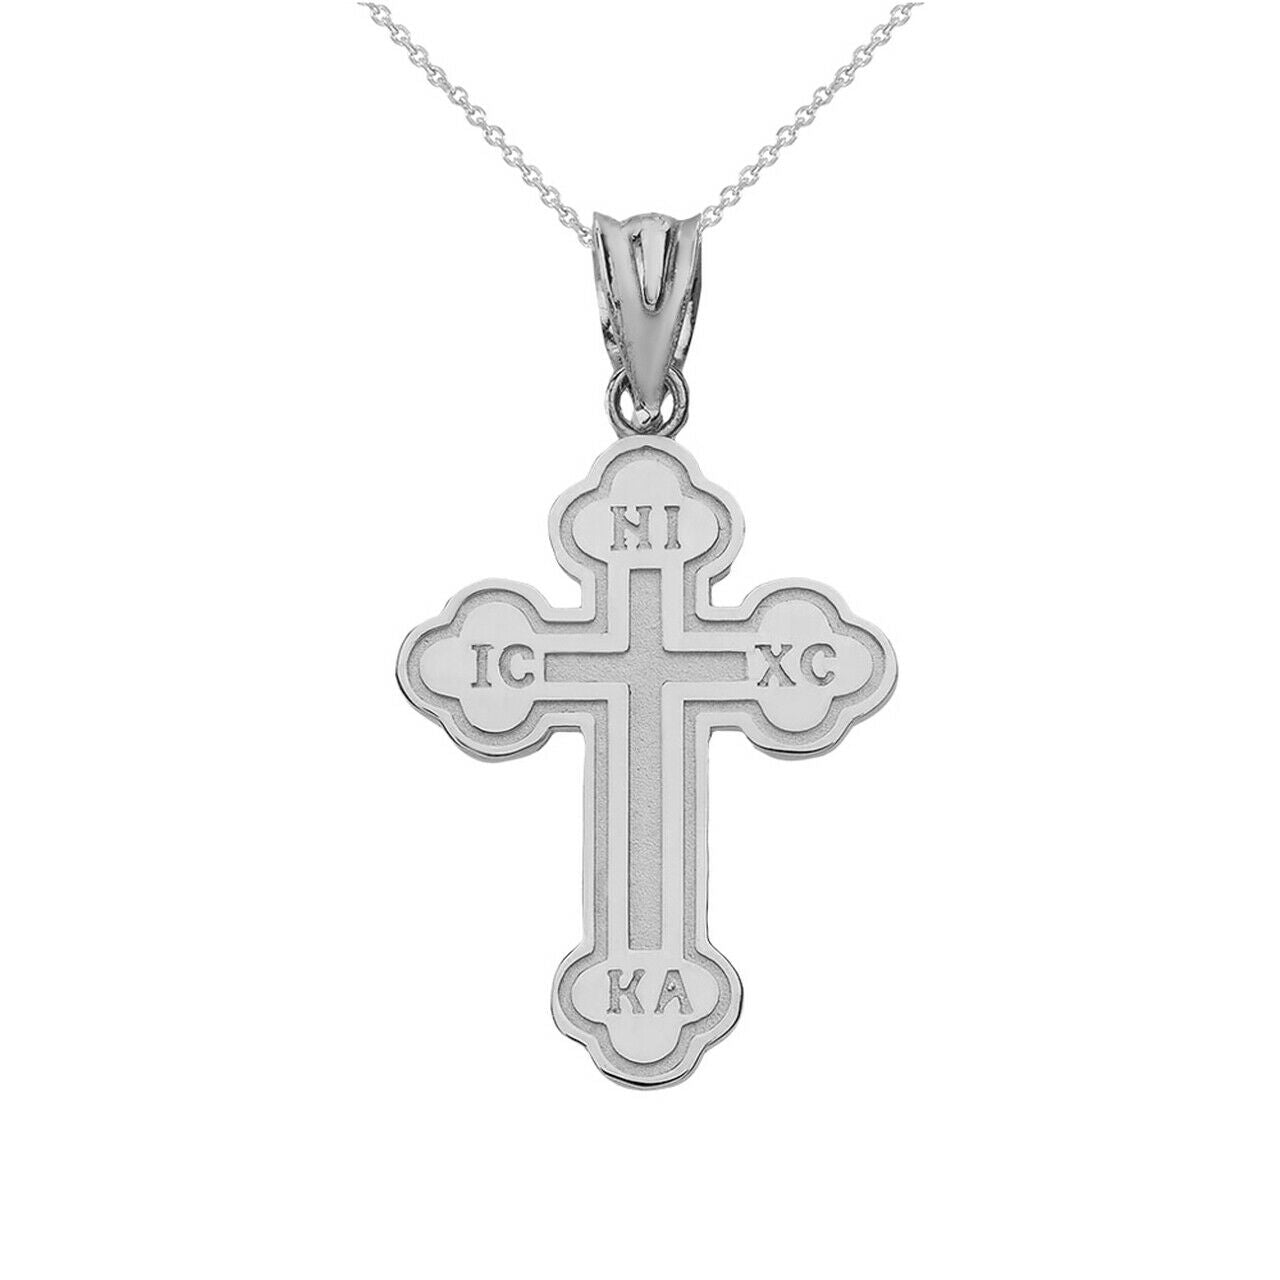 Sterling Silver Saint Nicholas Greek Orthodox IC XC Nika Cross Pendant Necklace